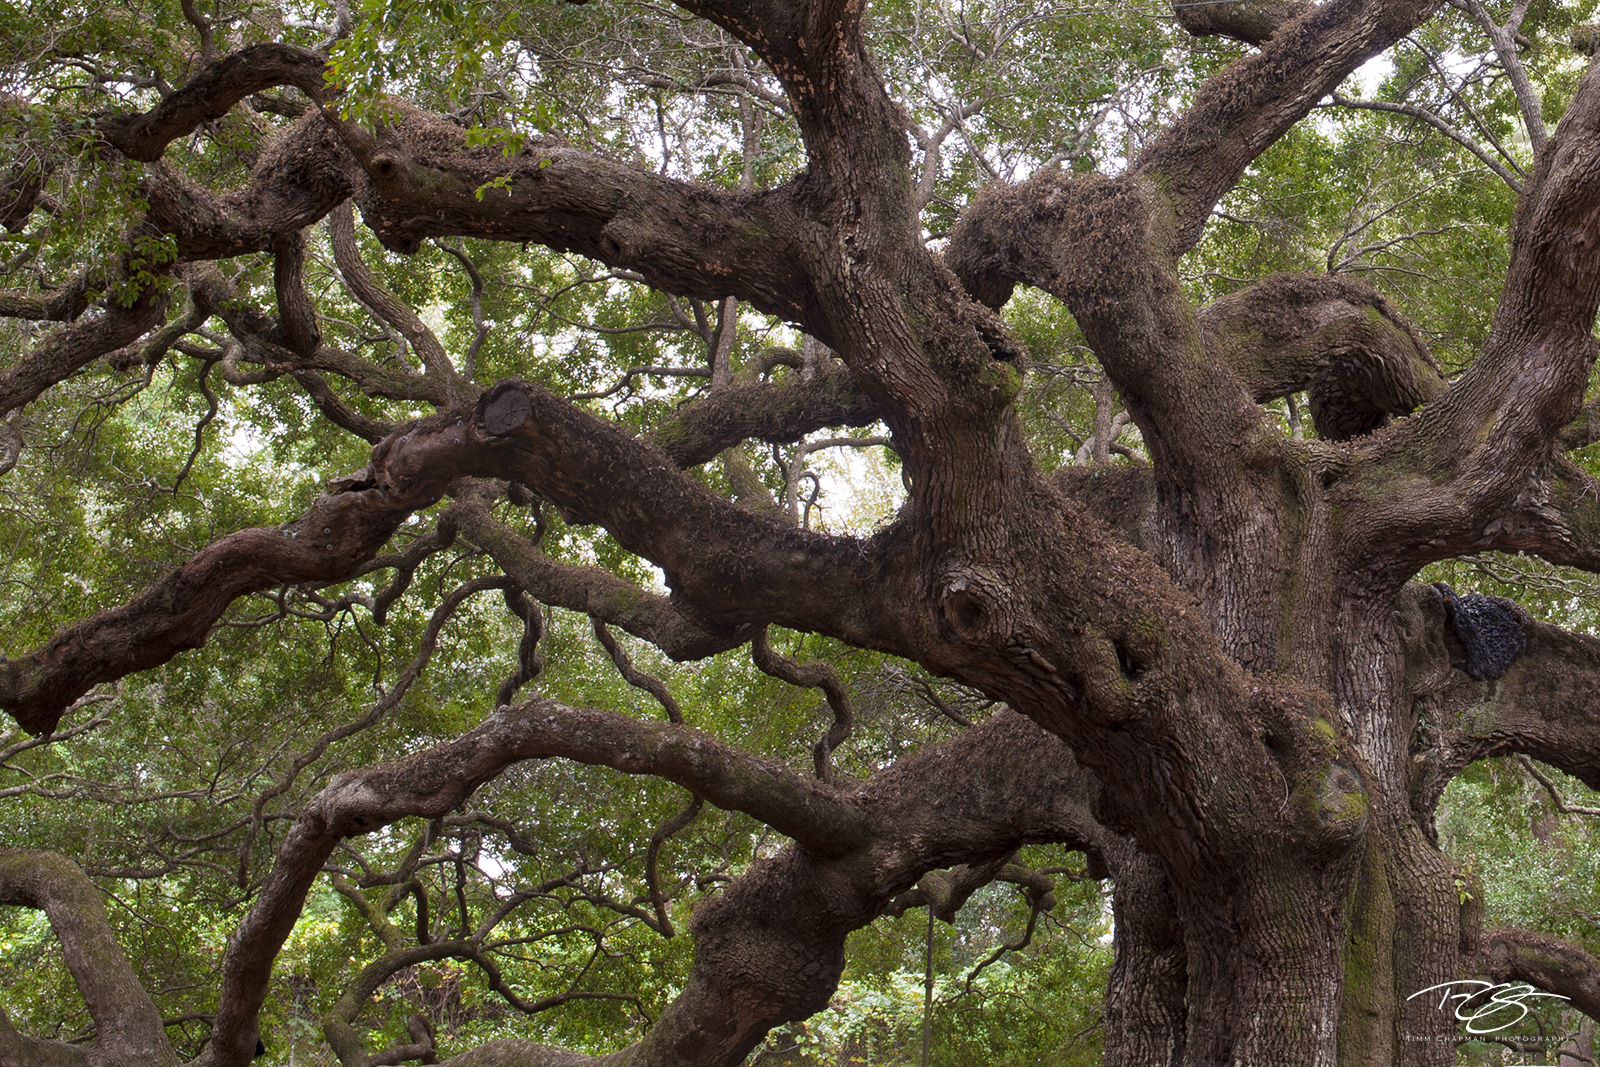 angel oak, live oak, braches, tree, oak tree, abstract, bark, massive, strength, photo